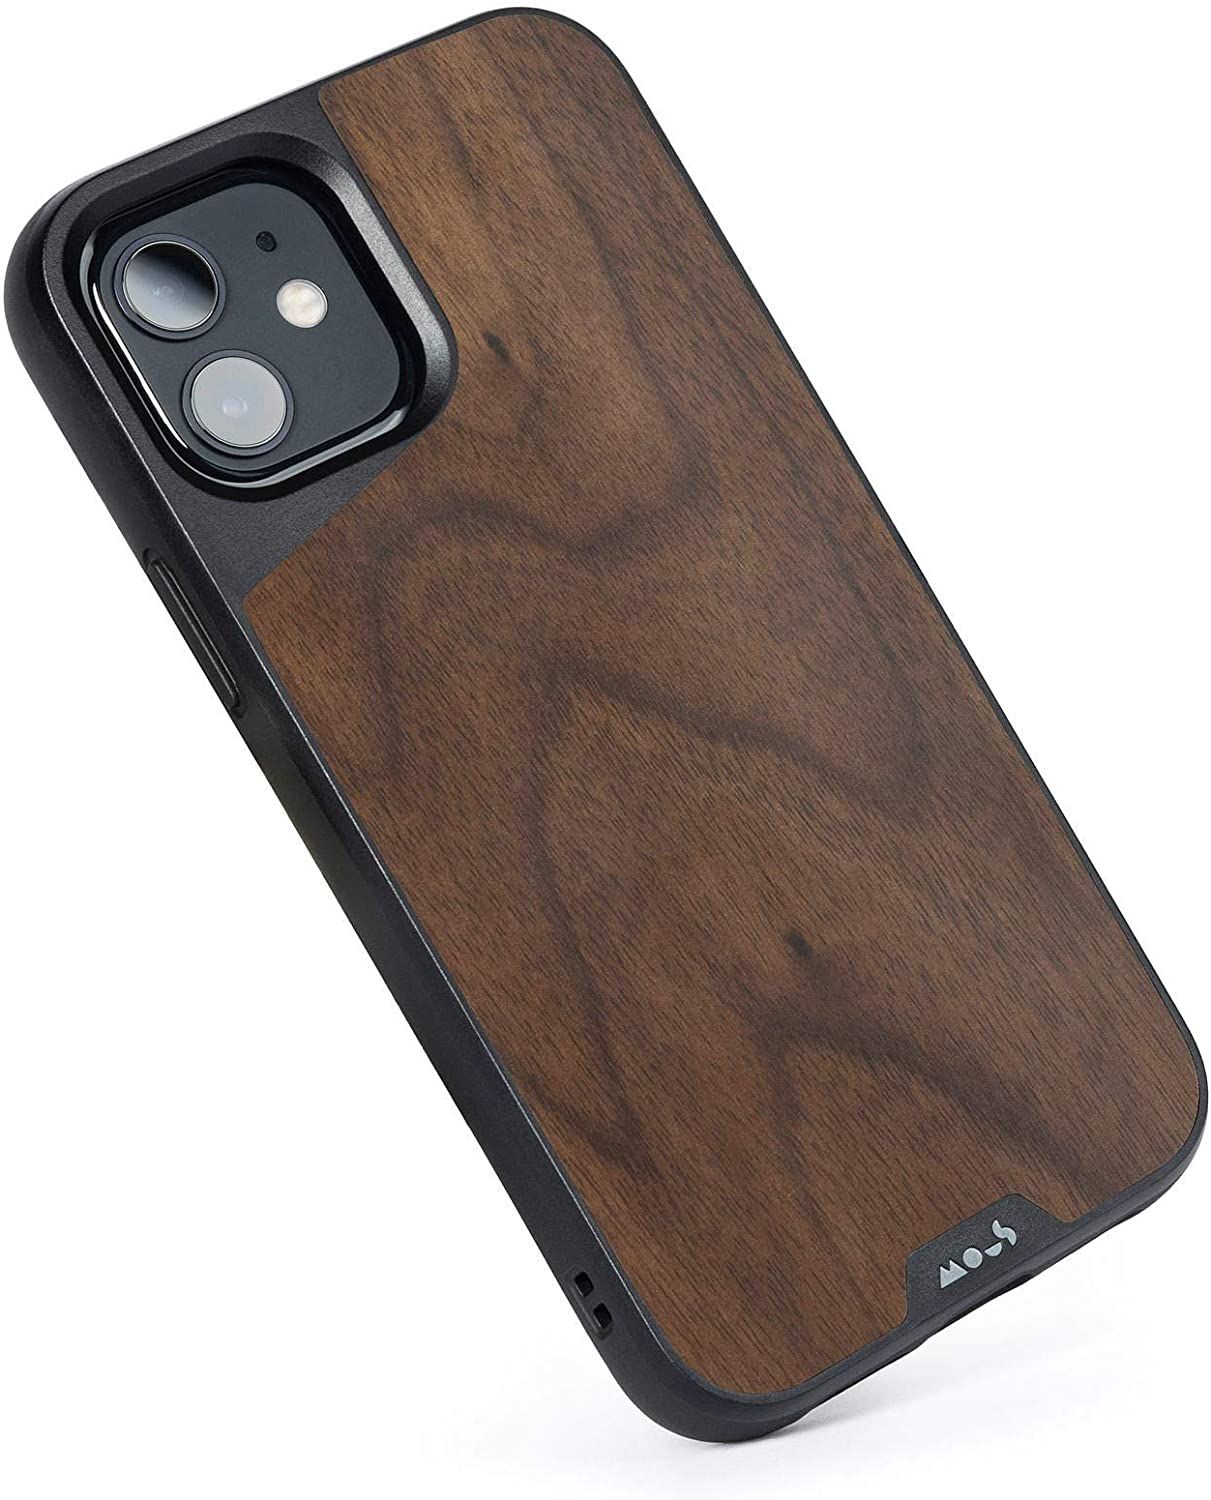 Mous - Protective Case for iPhone 12/12 Pro - Limitless 3.0 - Walnut - No Screen Protector